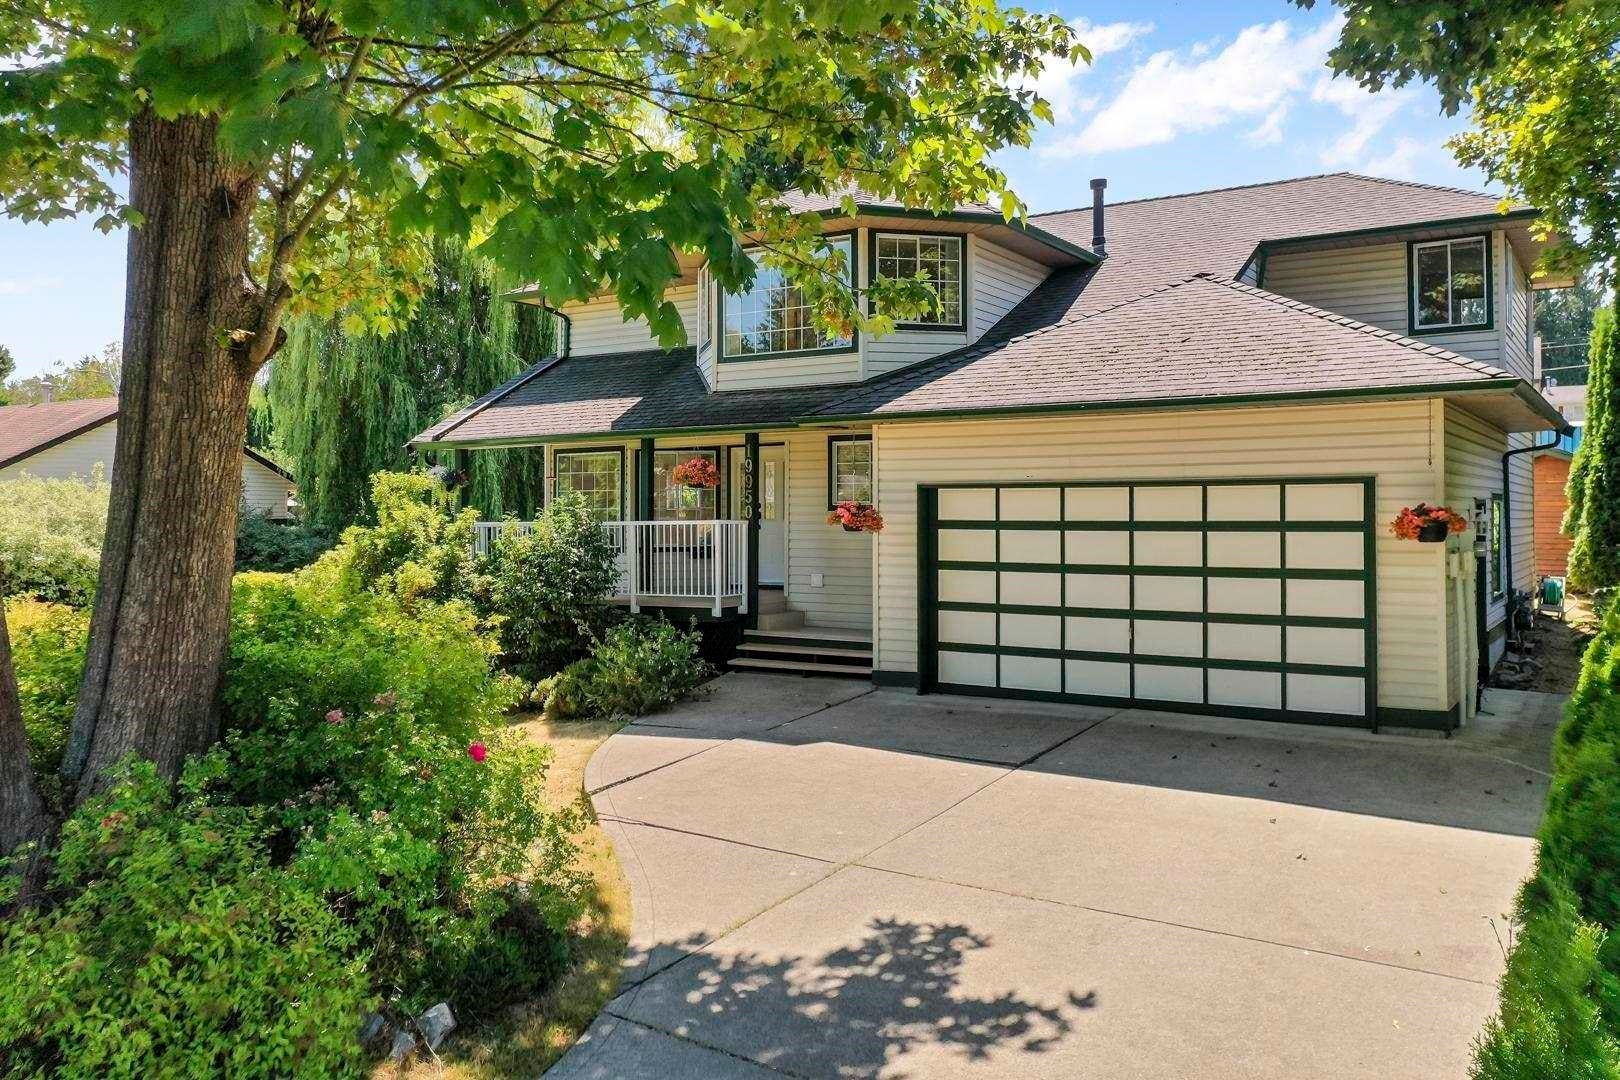 19950 48A AVENUE - Langley City House/Single Family for sale, 4 Bedrooms (R2615832) - #2